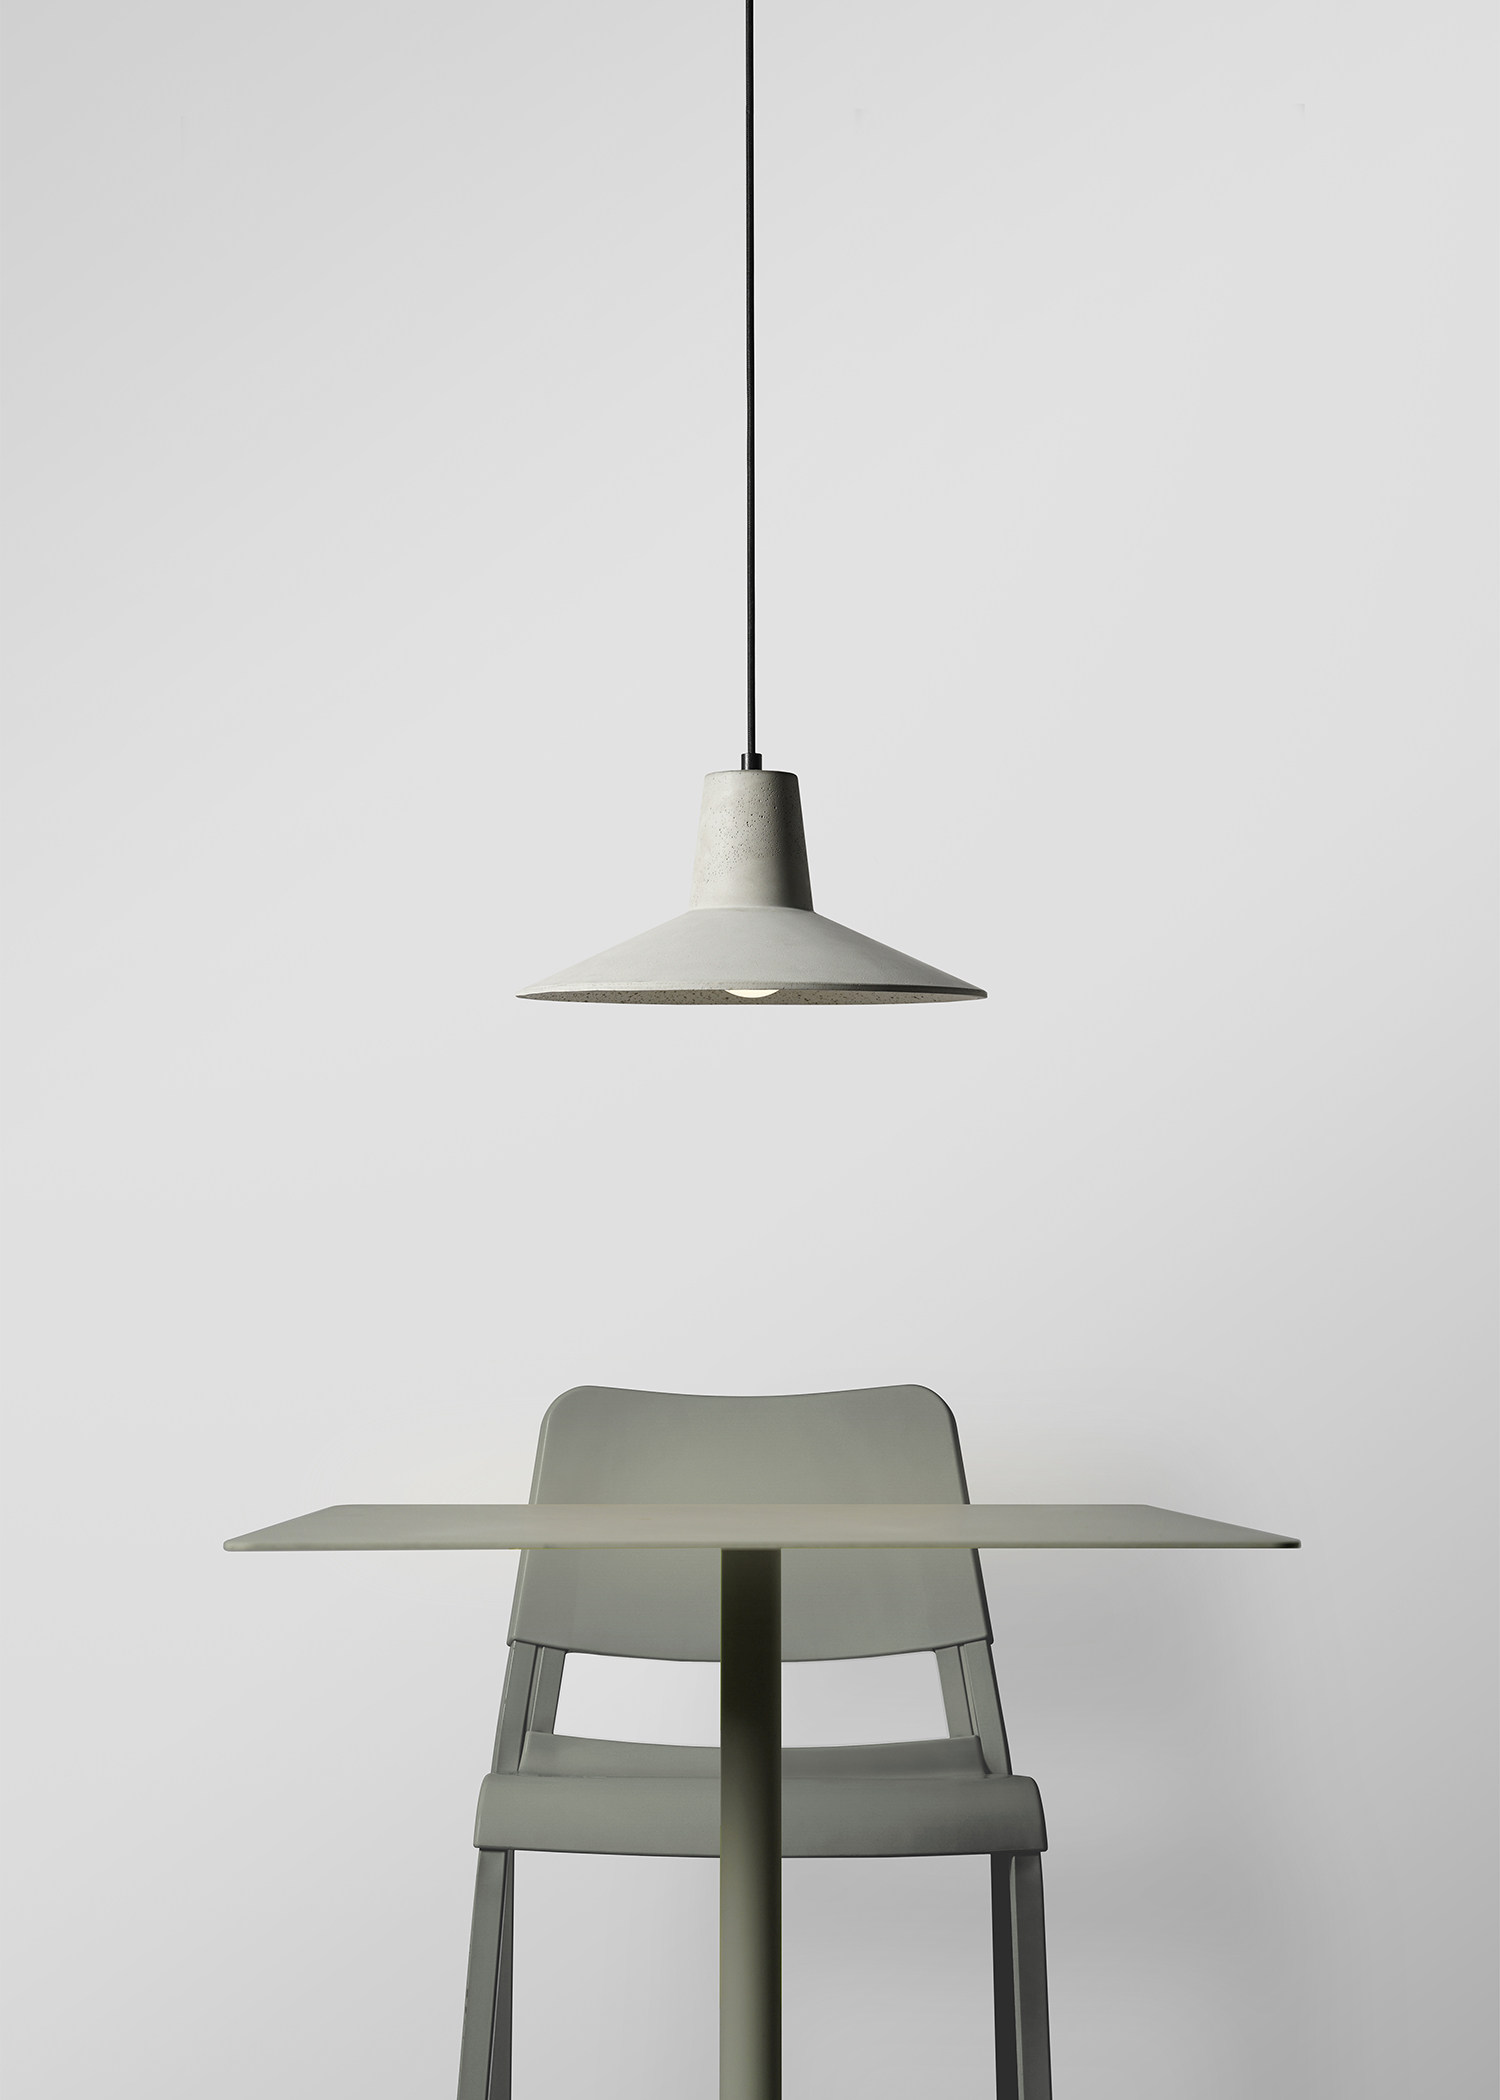 minimal concrete pendant light above sage green metal table and chair